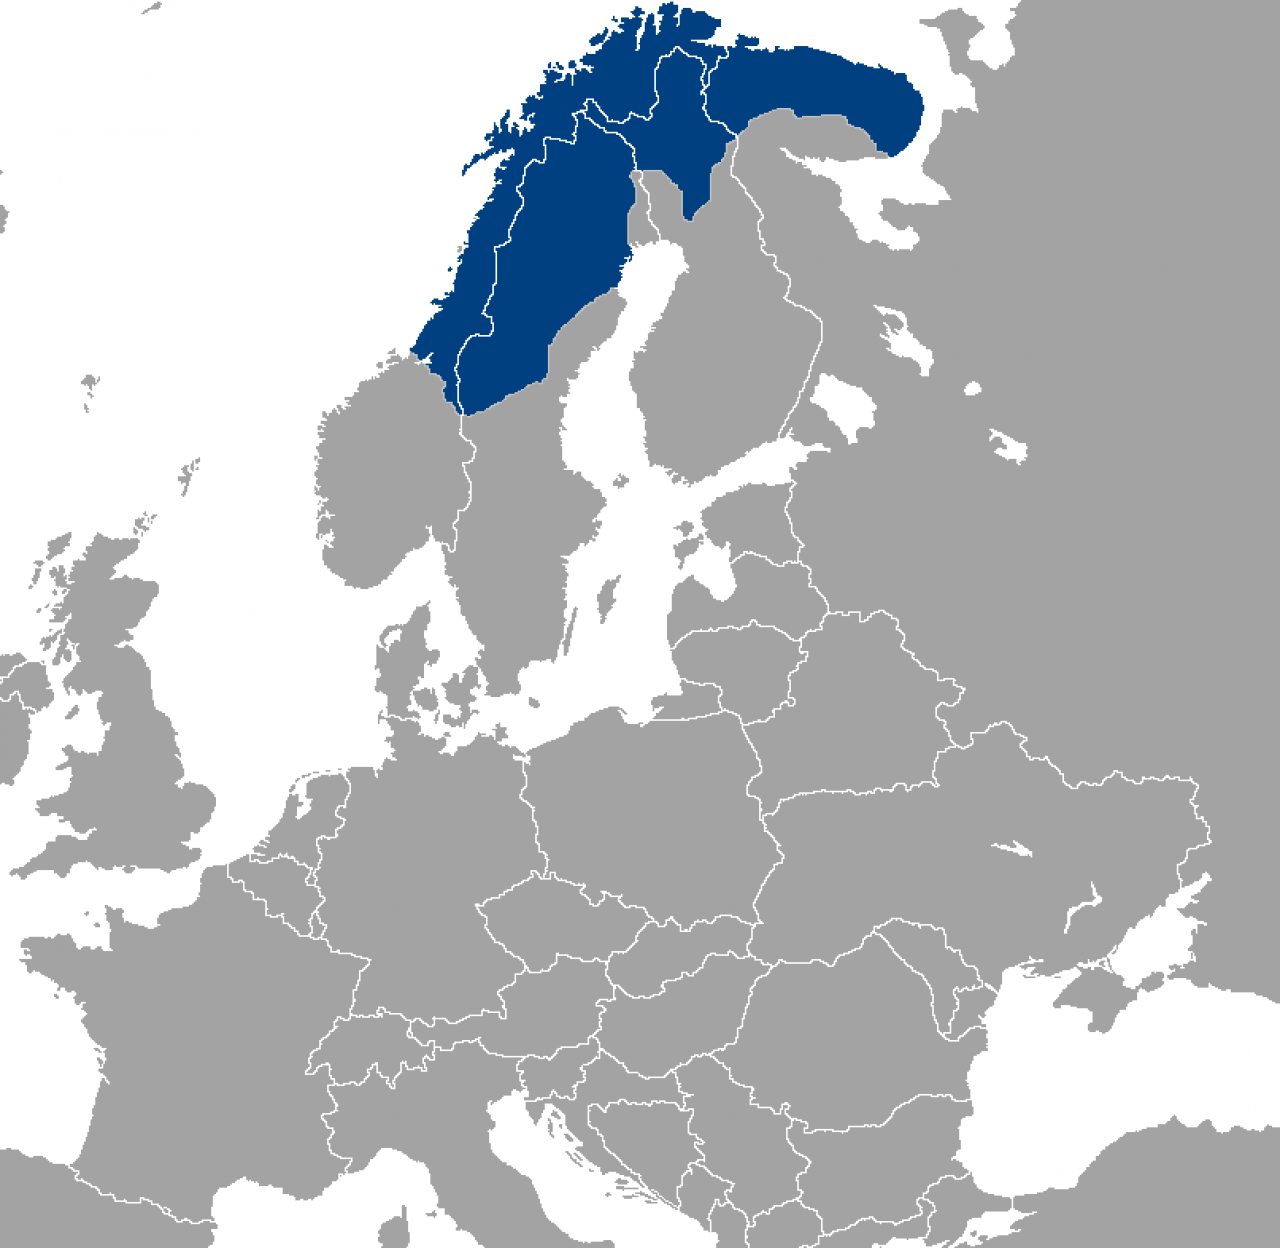 The Sámi live in Sápmi, which stretches across the northern parts of Norway, Sweden, Finland and the Kola Peninsula in Russia.